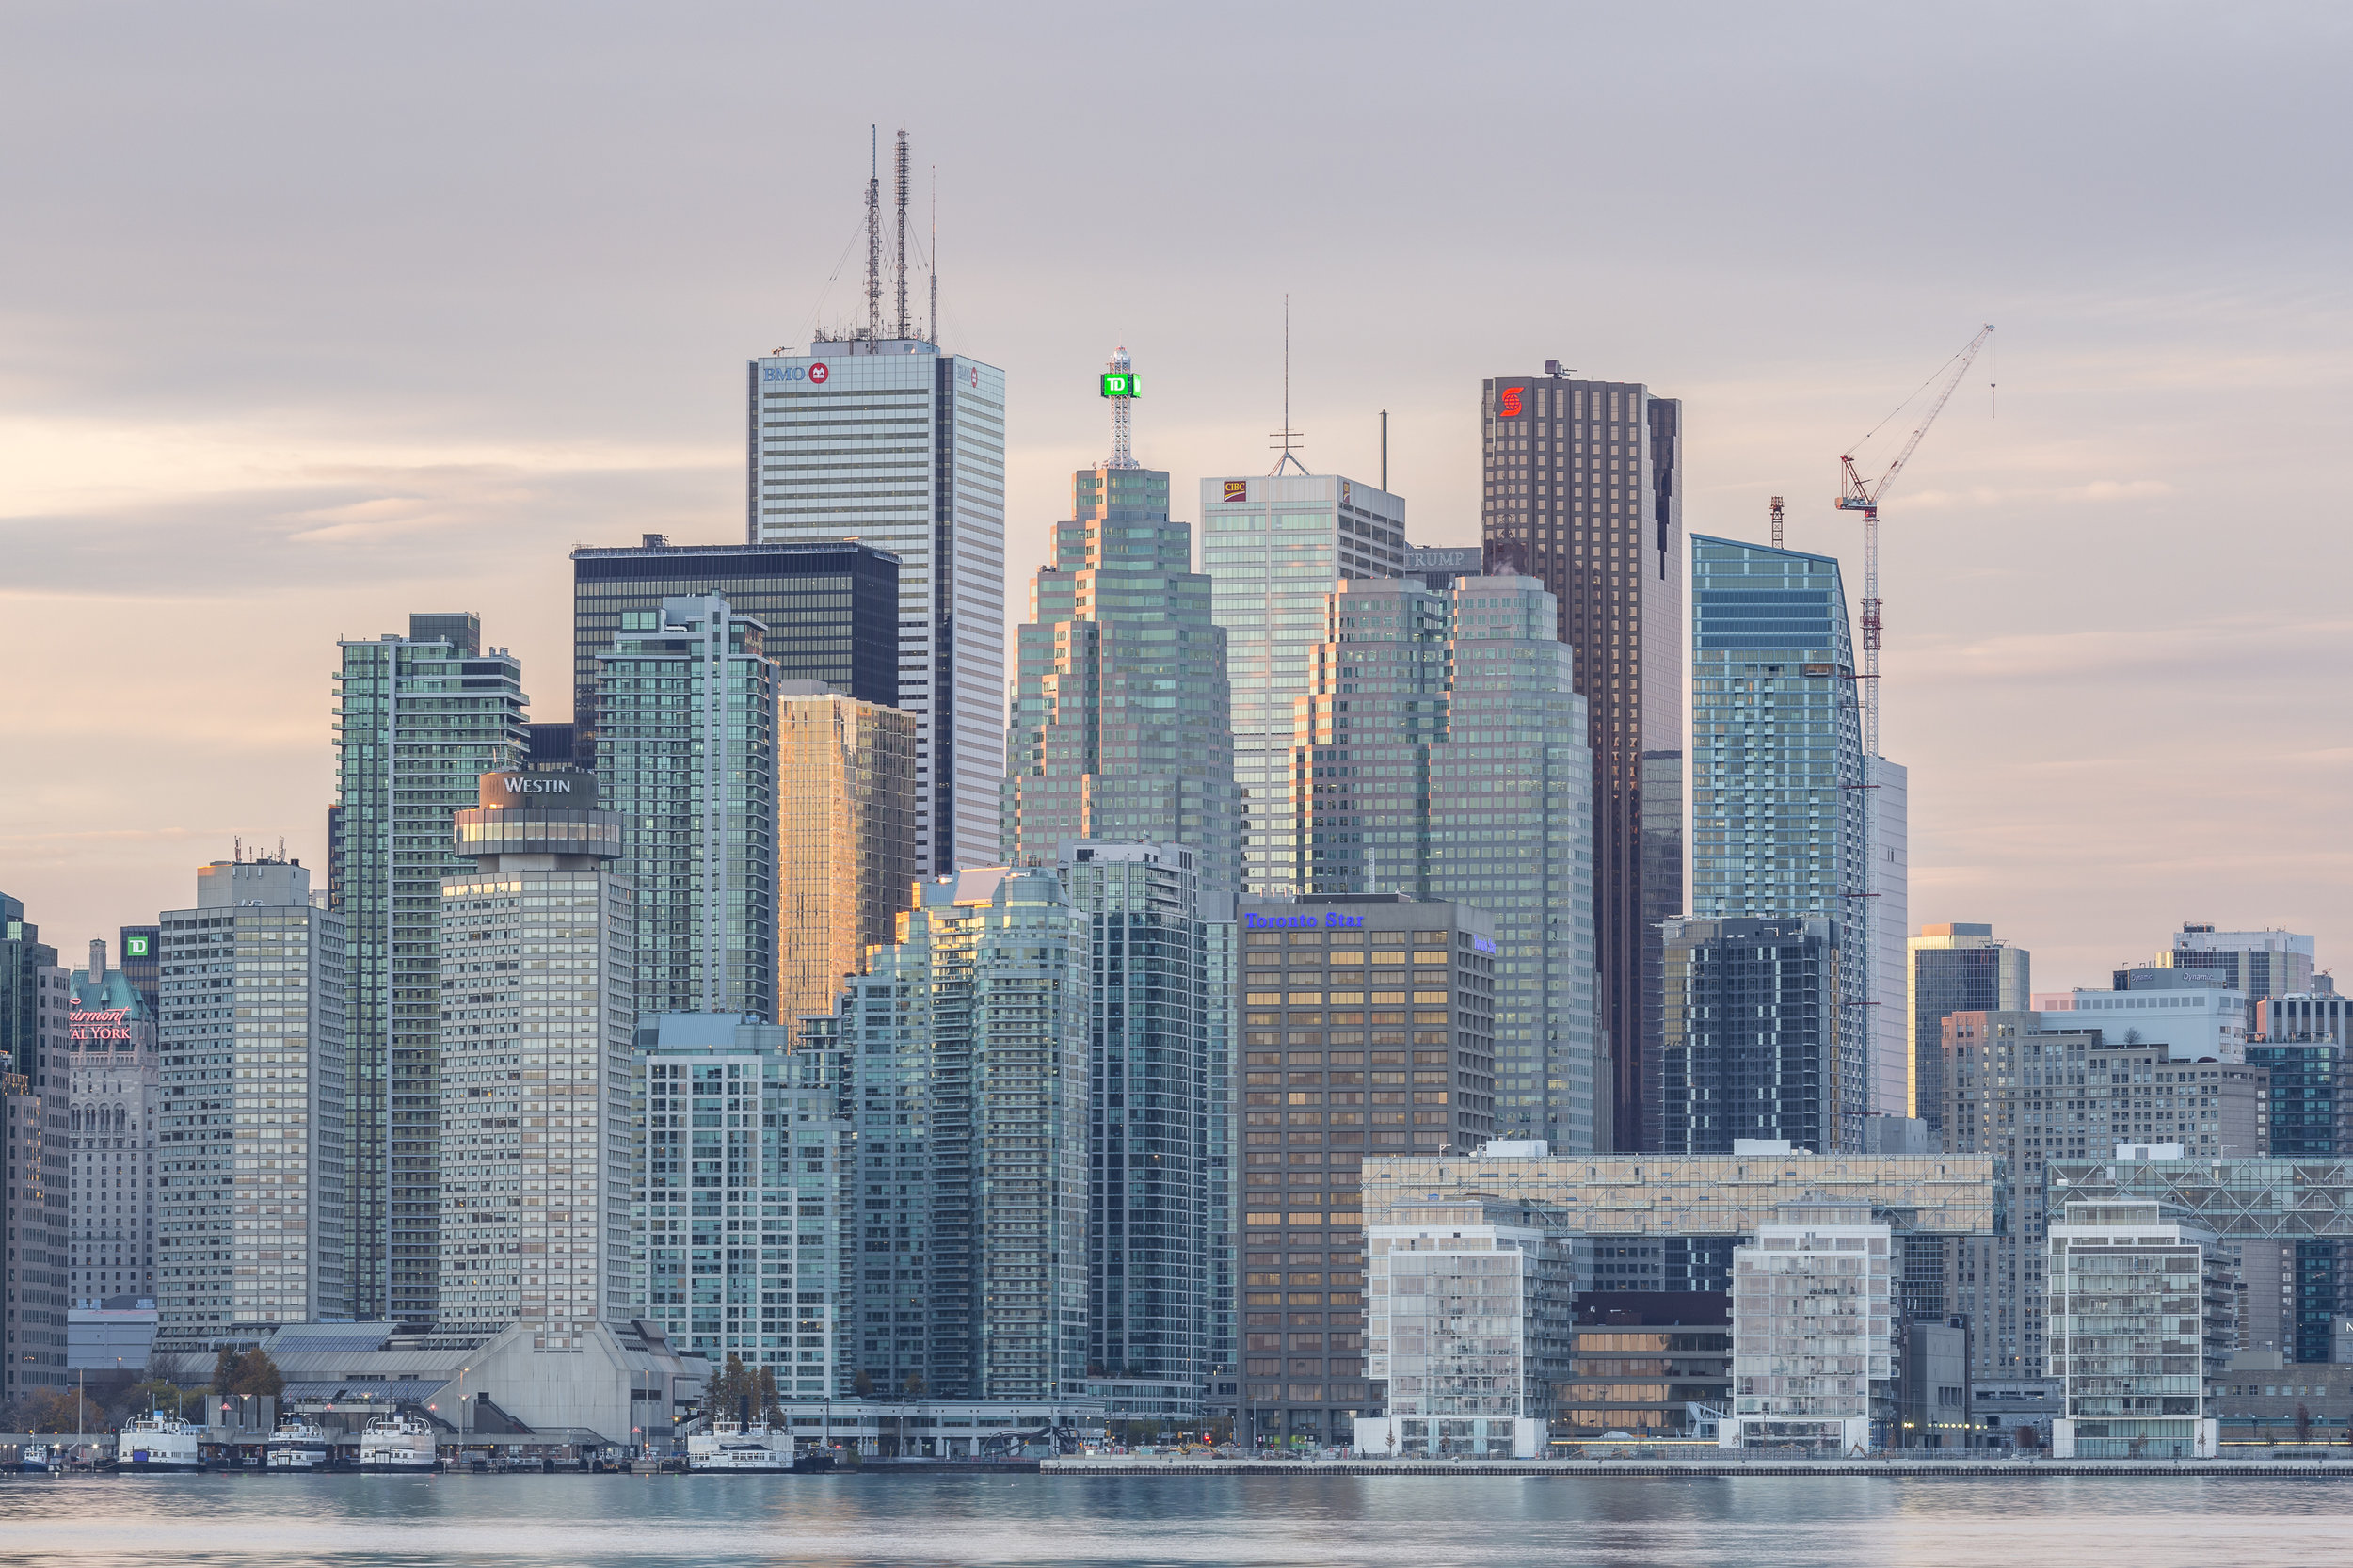 A VIEW OF TORONTO'S FINANCIAL DISTRICT FROM THE WATERFRONT    Photo Credit: licensed through shutterstock.com